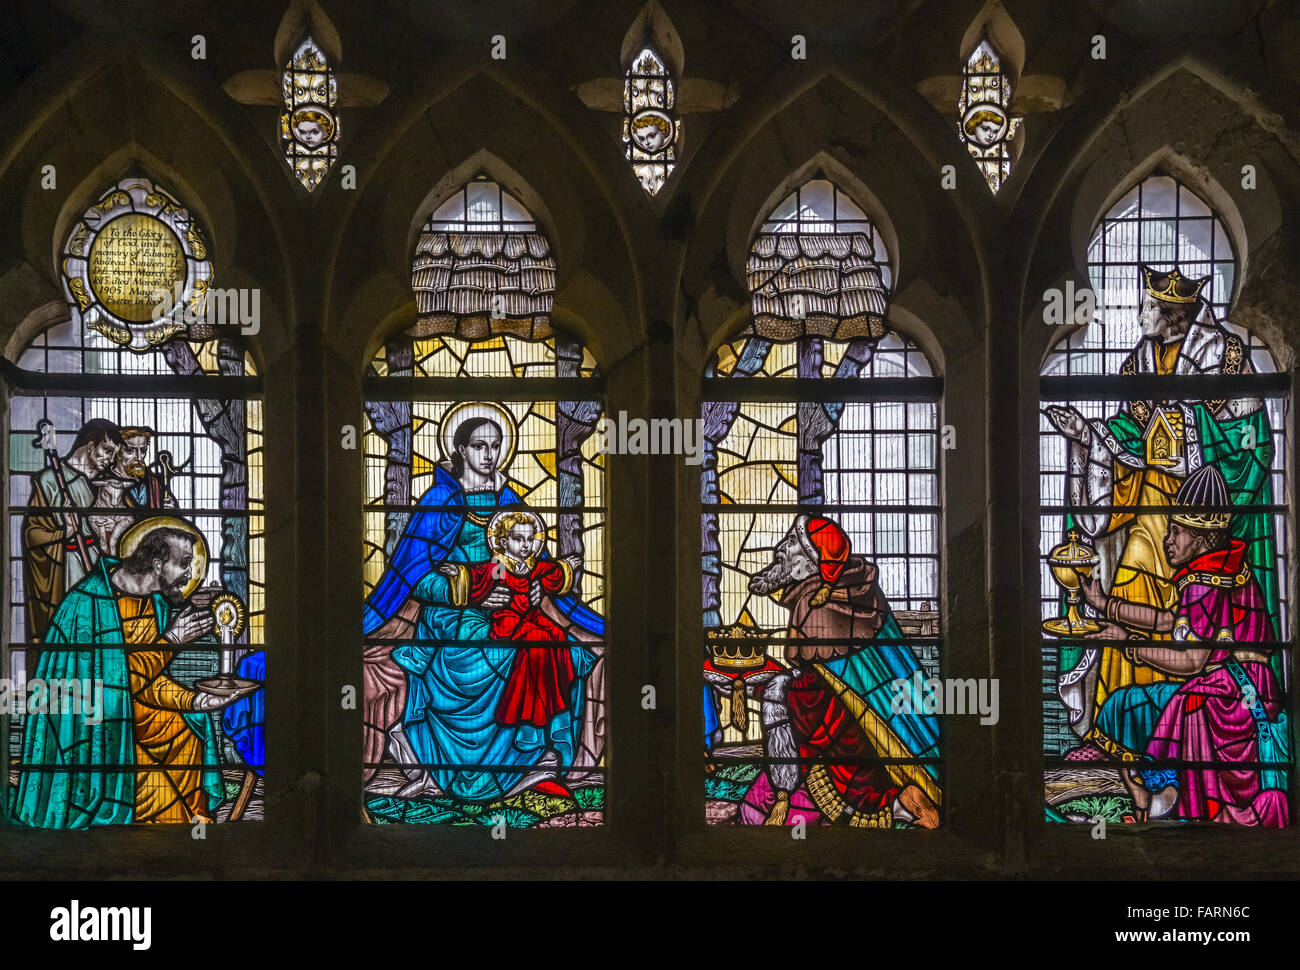 Colorful lead glass window at the Exeter Cathedral, Devon, England, UK | Farbenfrohe Bleiverglasung in der Kathedrale Stock Photo